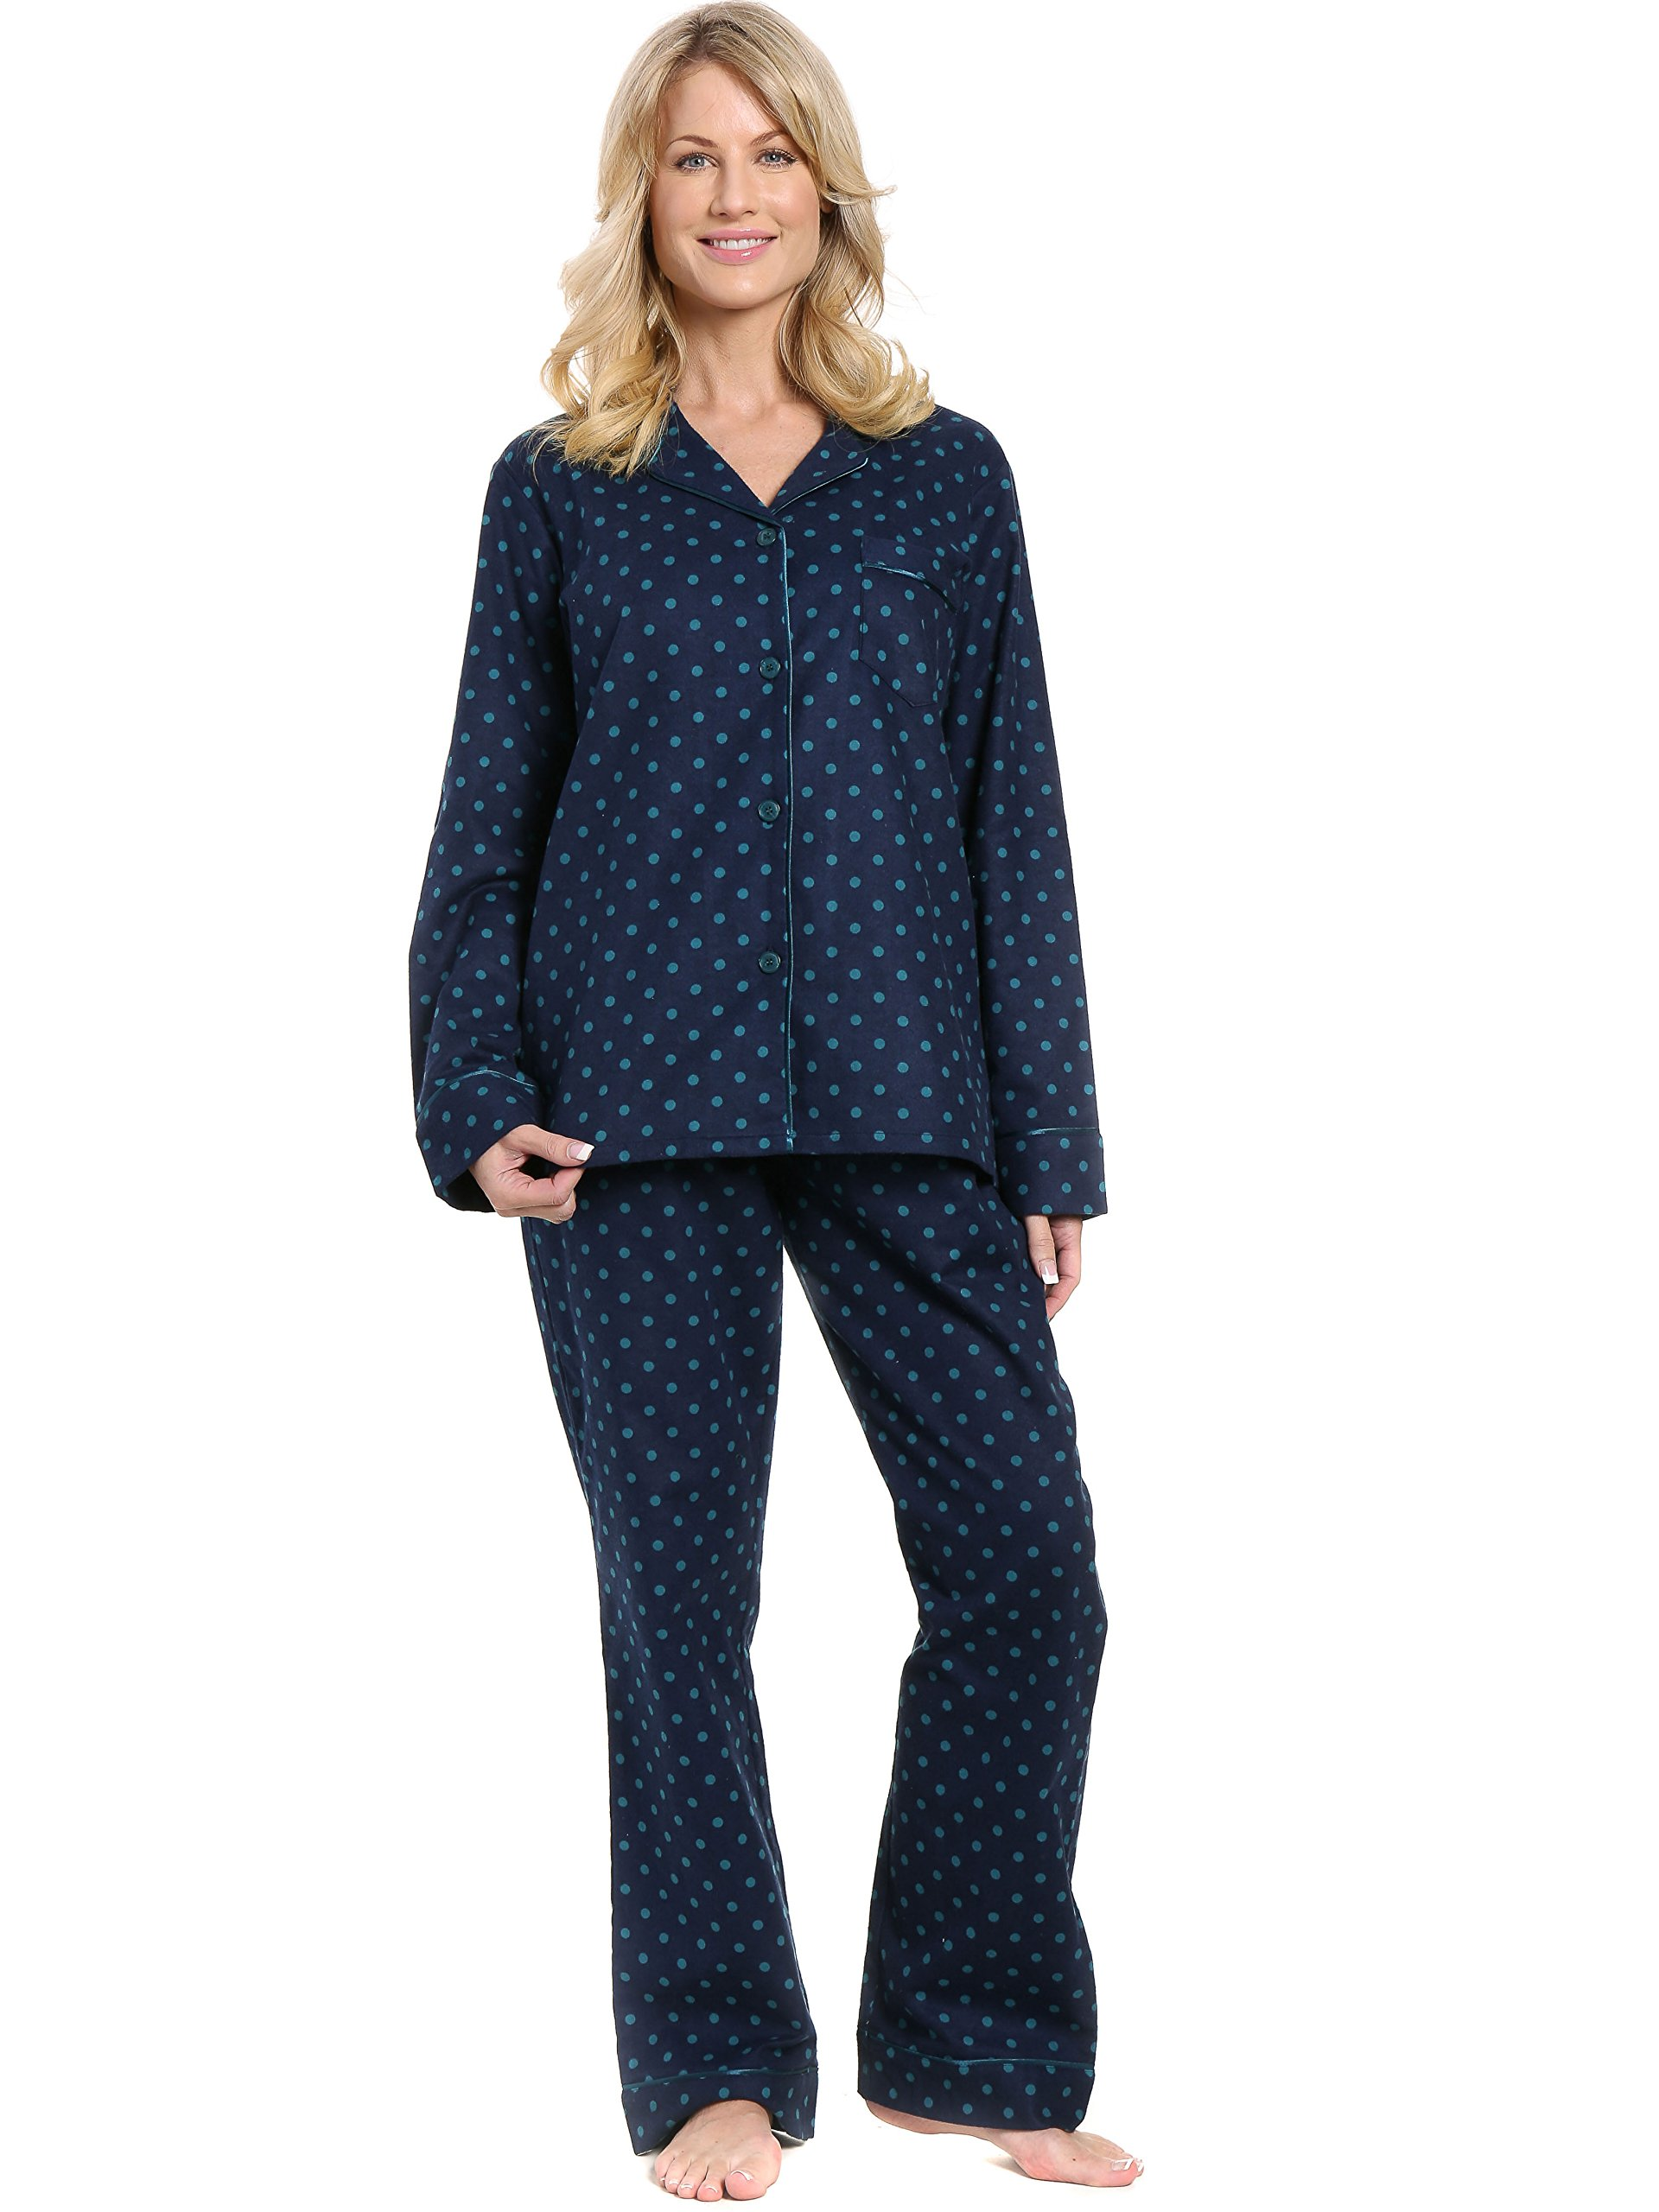 Women's Cotton Flannel Pajama Sleepwear Set - Dots Diva Blue - Large